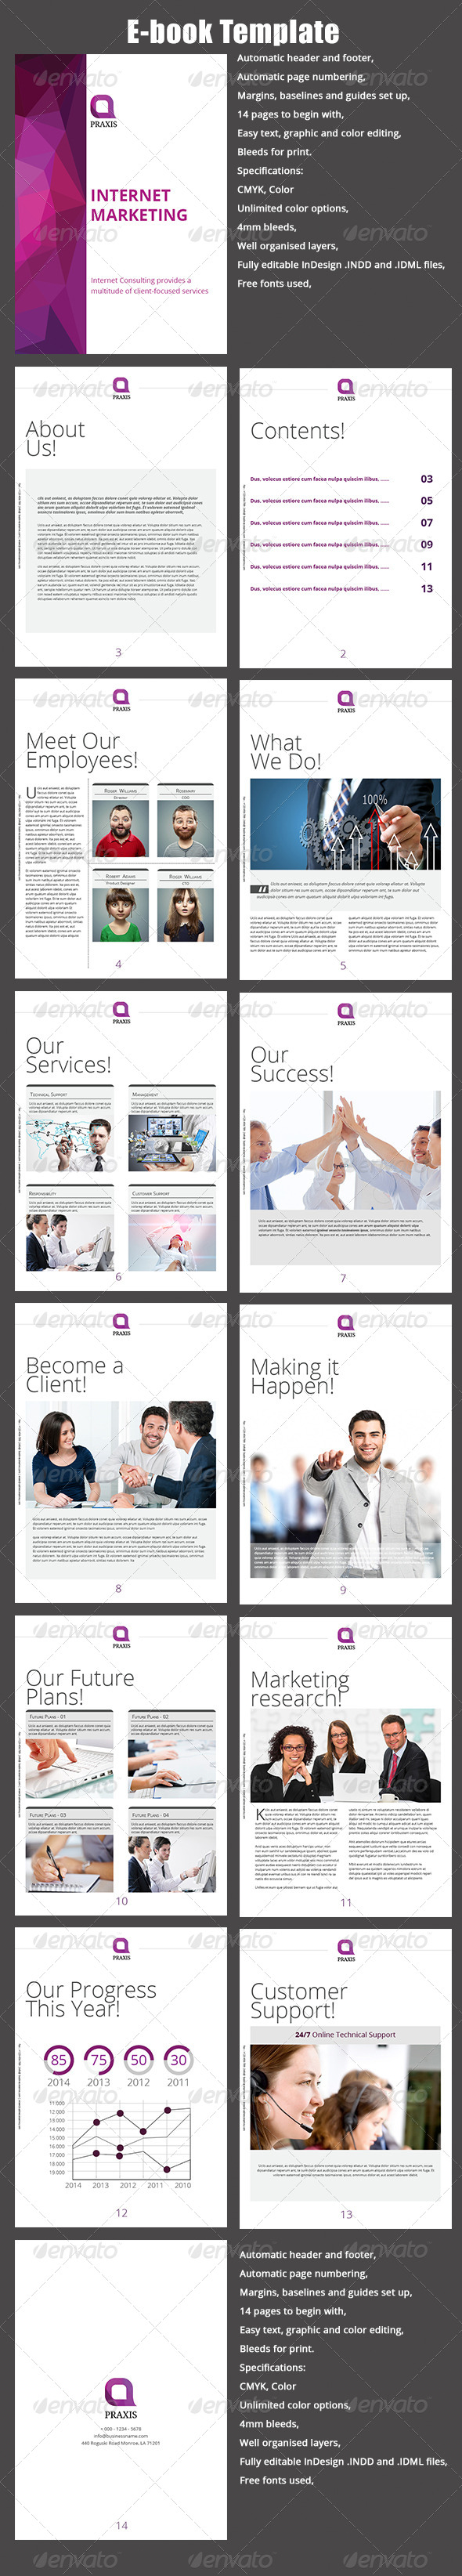 GraphicRiver E-book Template 8563146